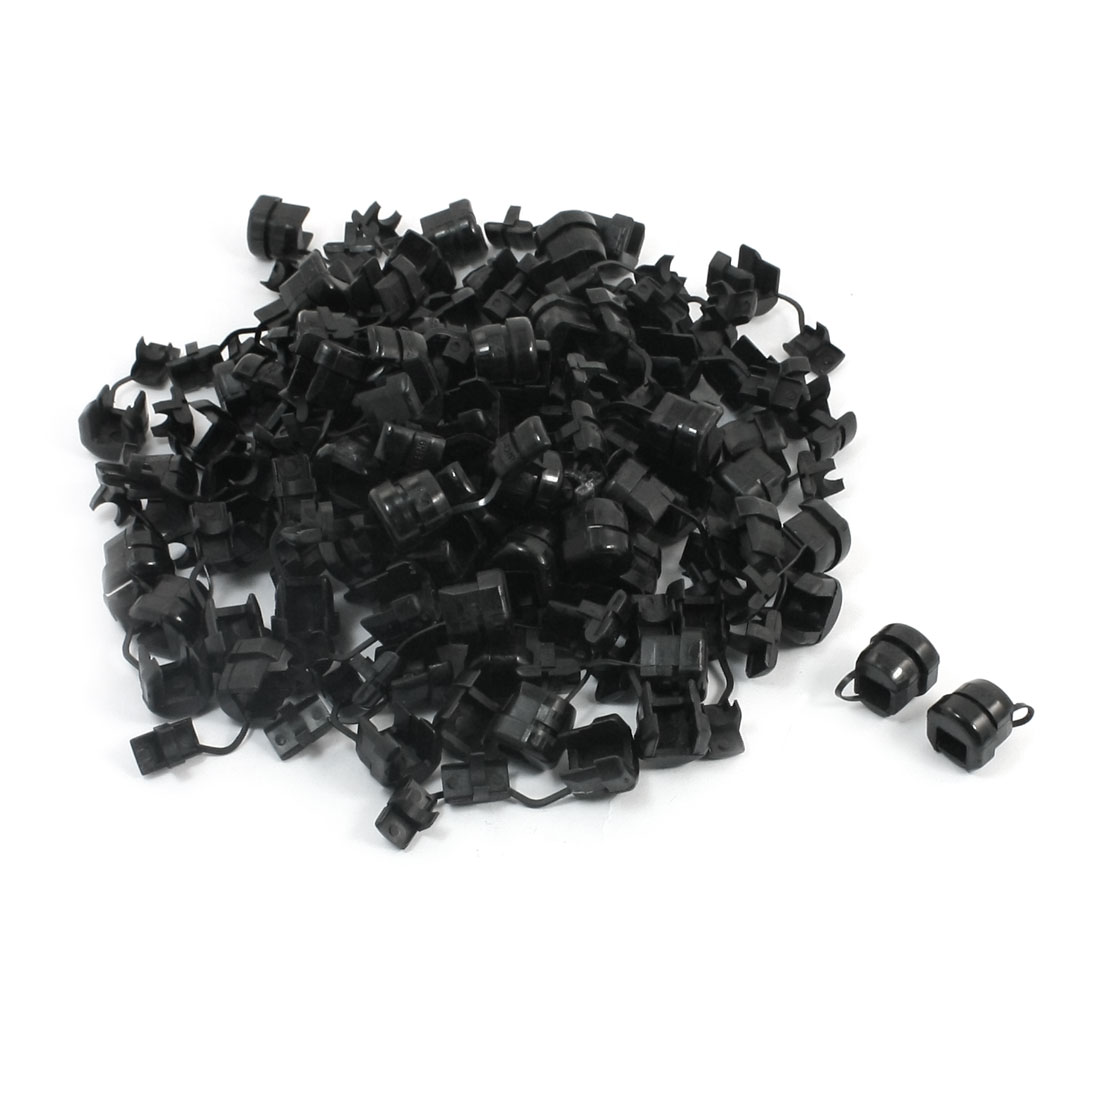 100 Pcs Wires Protectors Strain Relief Bushing for 8.2-9.2mm Round Cables